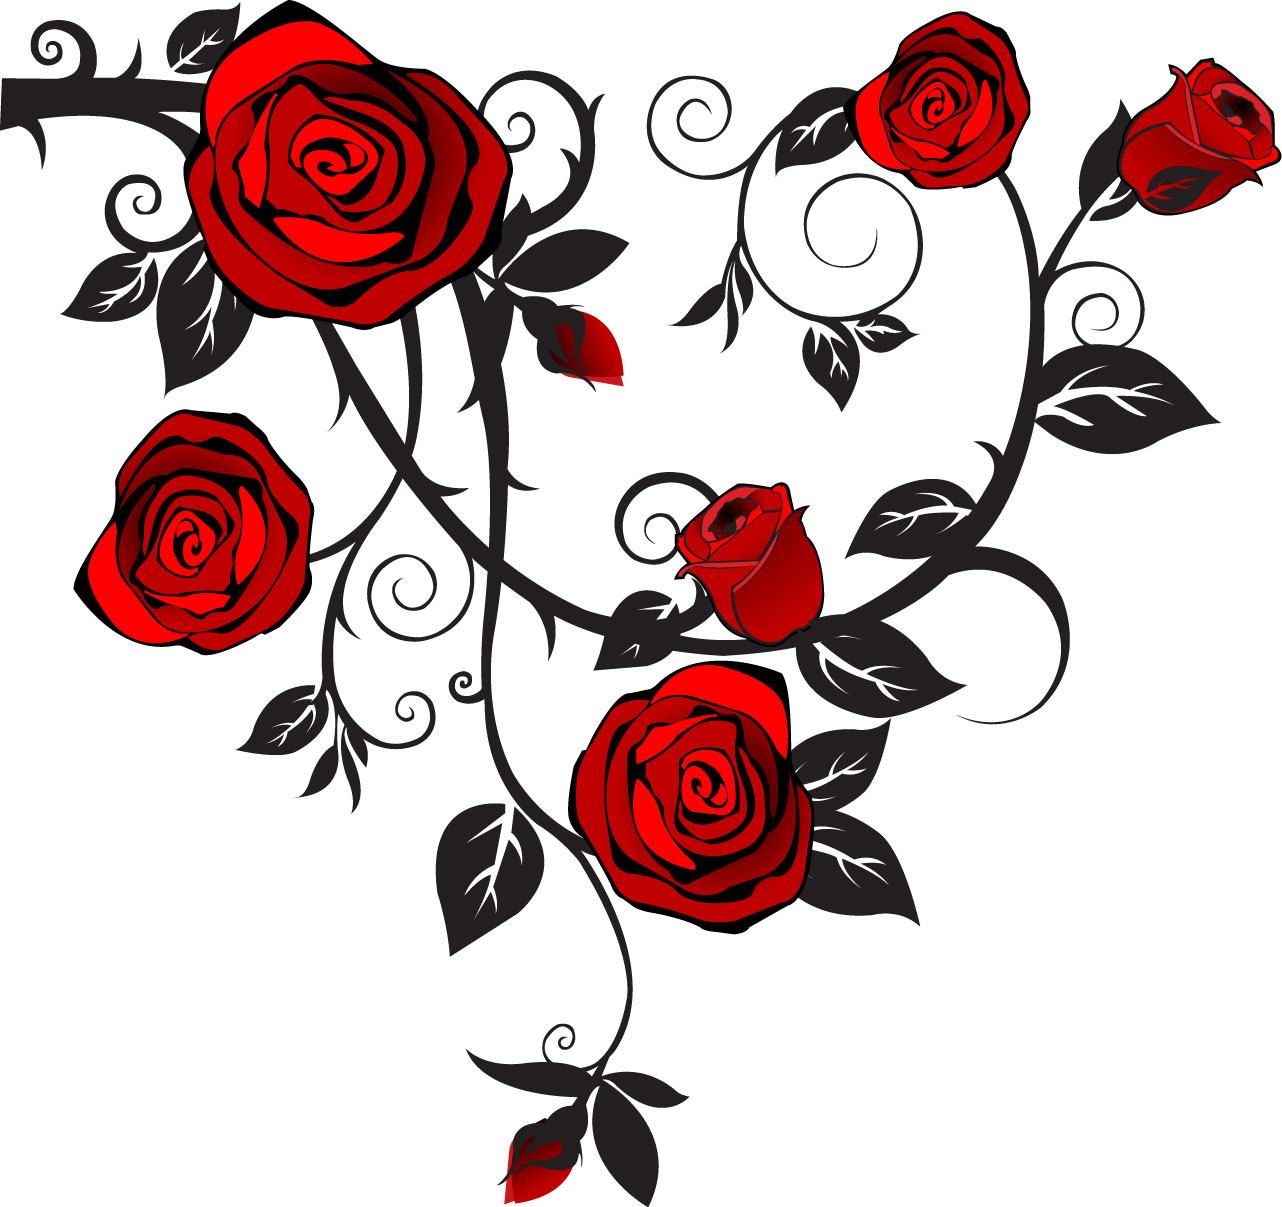 Single rose clip art free clipart images image #3329